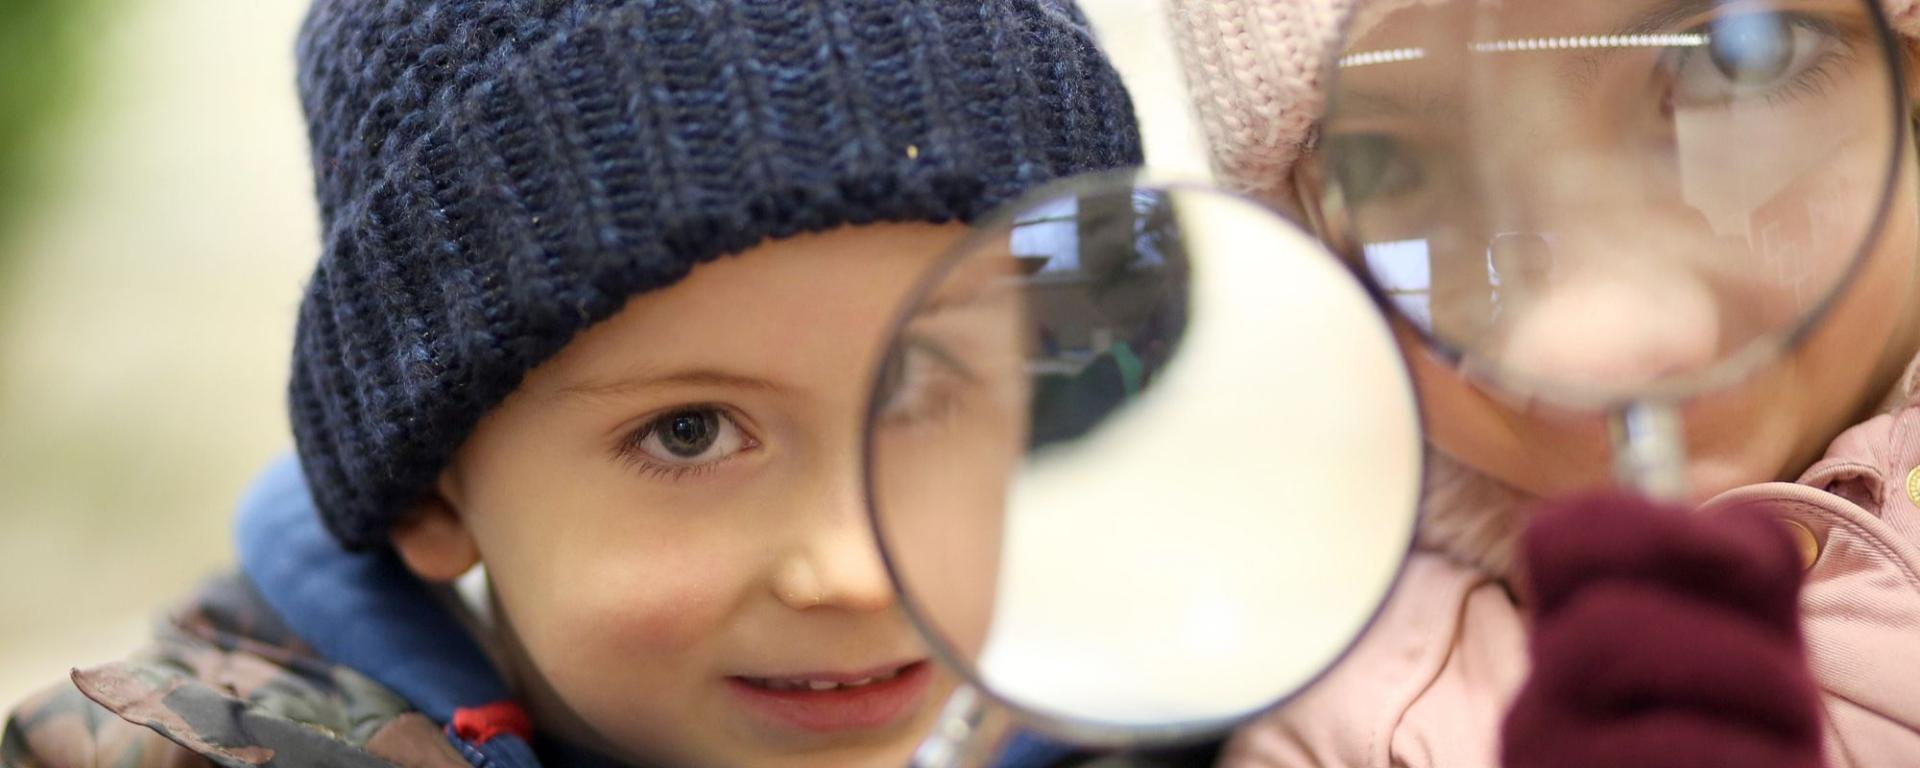 Young Boy And Girl Looking Through A Magnifying Glass